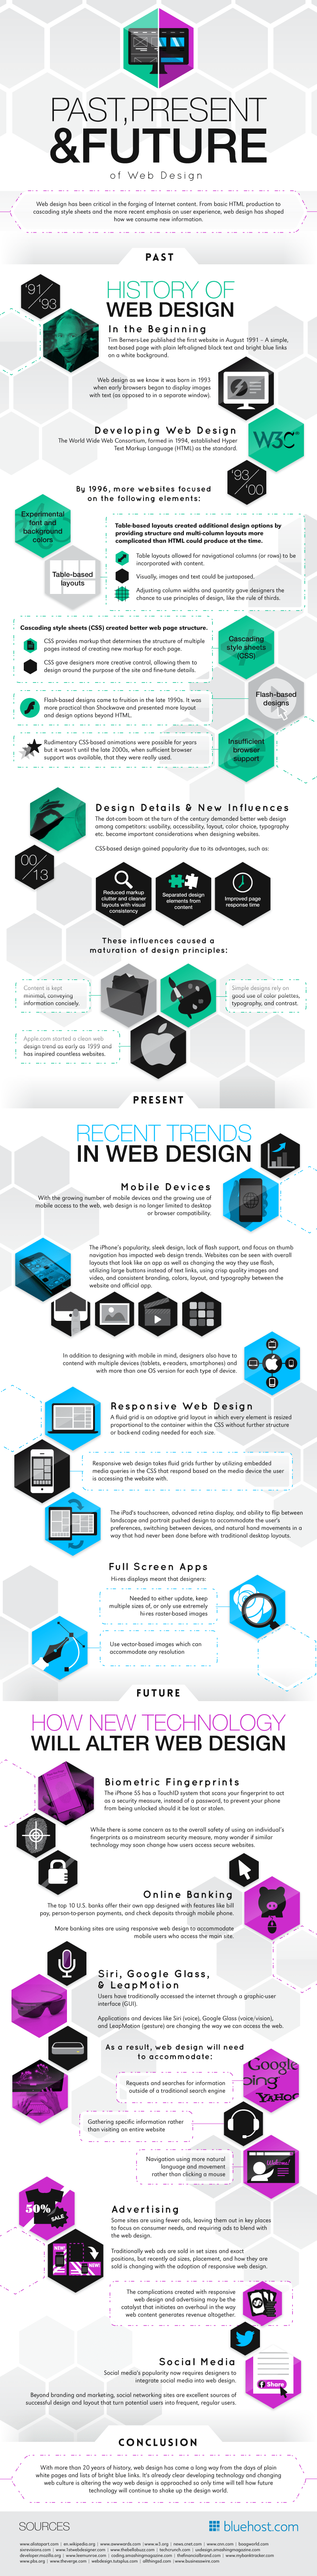 web design infographic-min